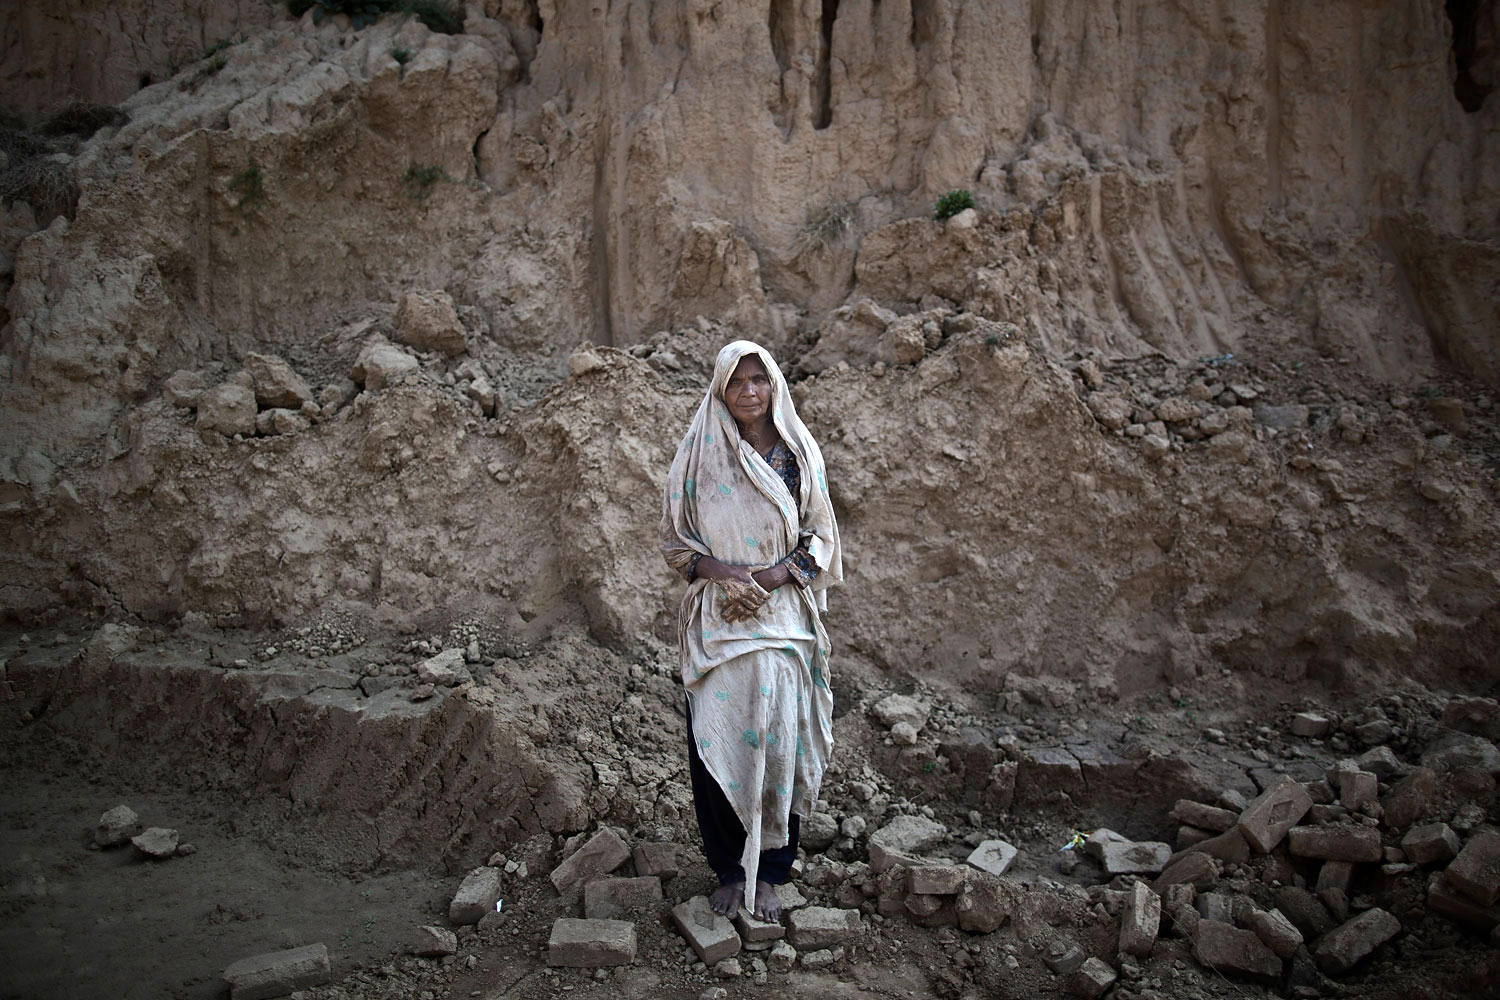 Amna Bhatti, 60, a Pakistani brick factory worker, poses for a picture at the site of her work in Mandra, near Rawalpindi, Pakistan, March 2, 2014. Amna is in debt to her employer the amount of 150,000 rupees (approximately $1,500).